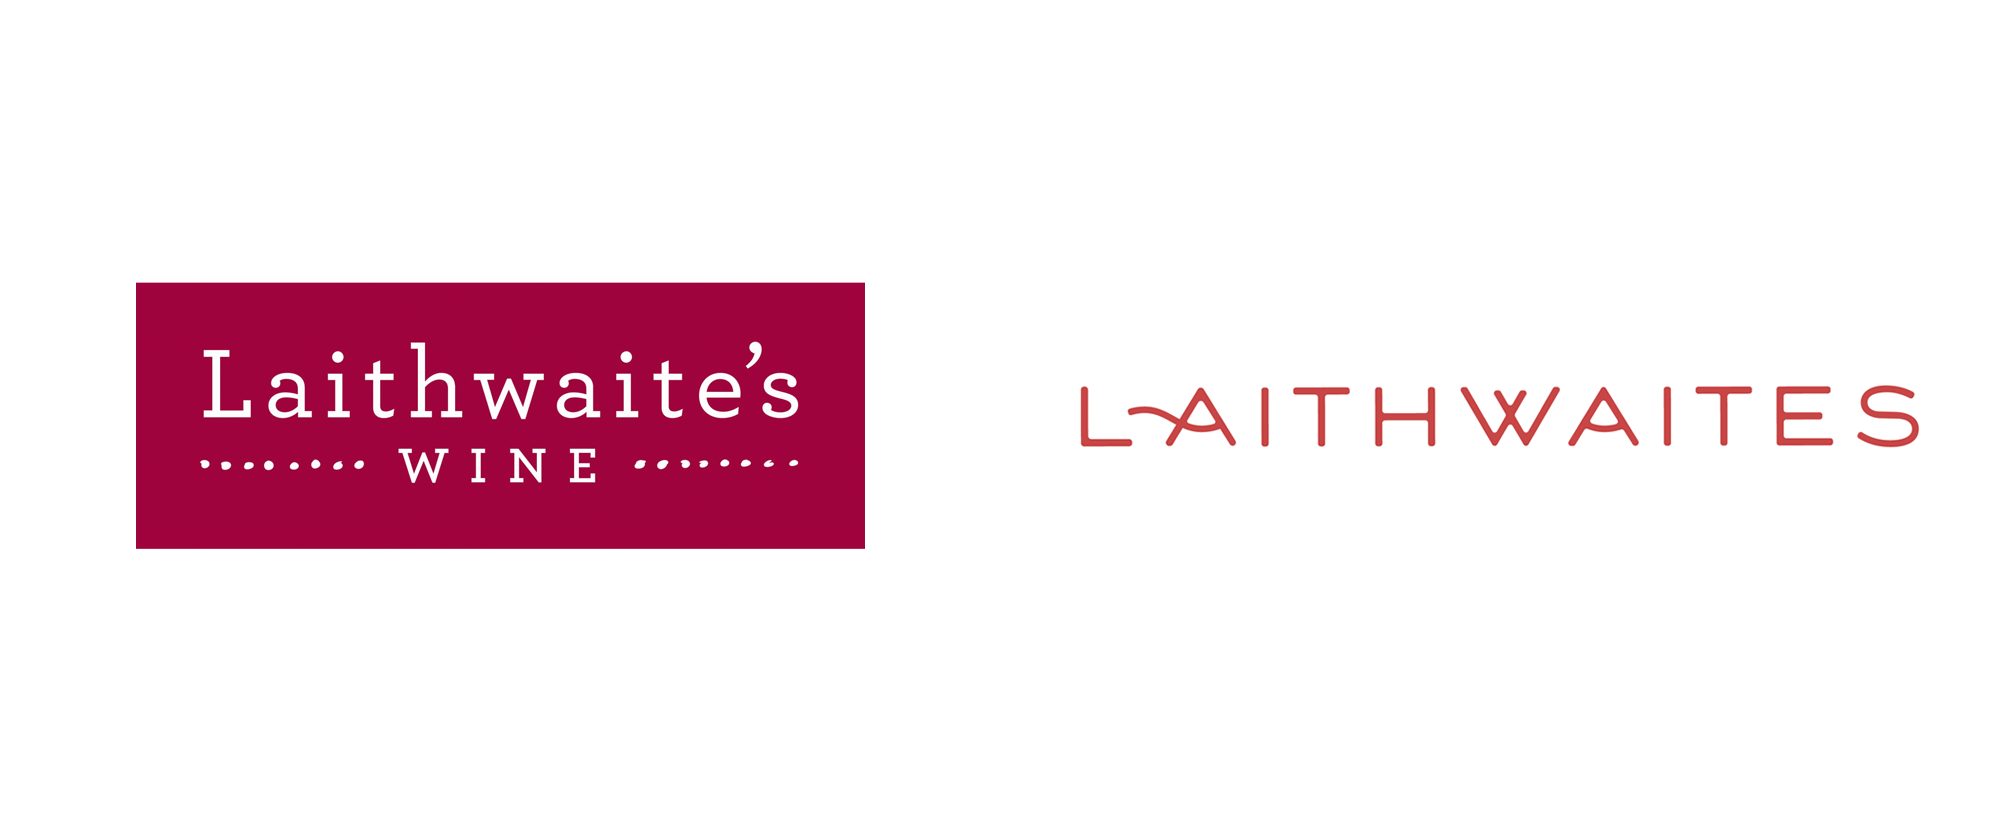 New Logo and Identity for Laithwaites by I&CO